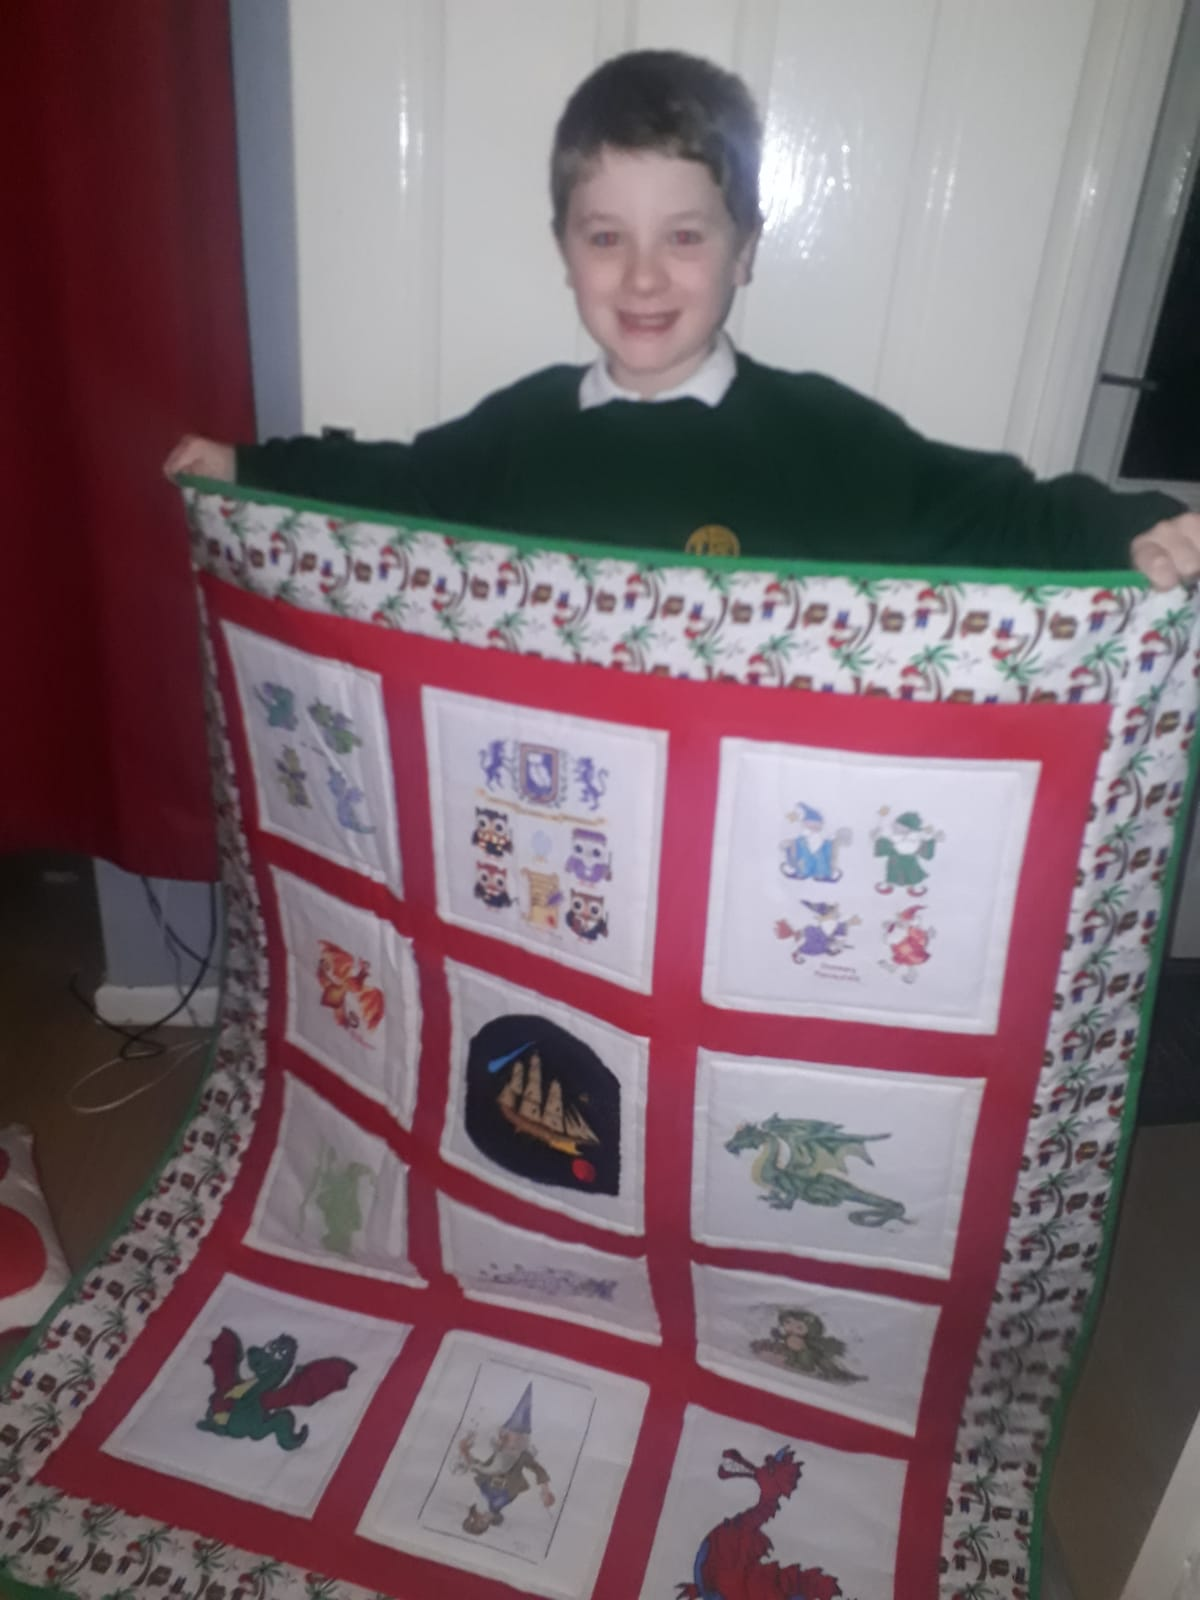 Photo of Cody S's quilt